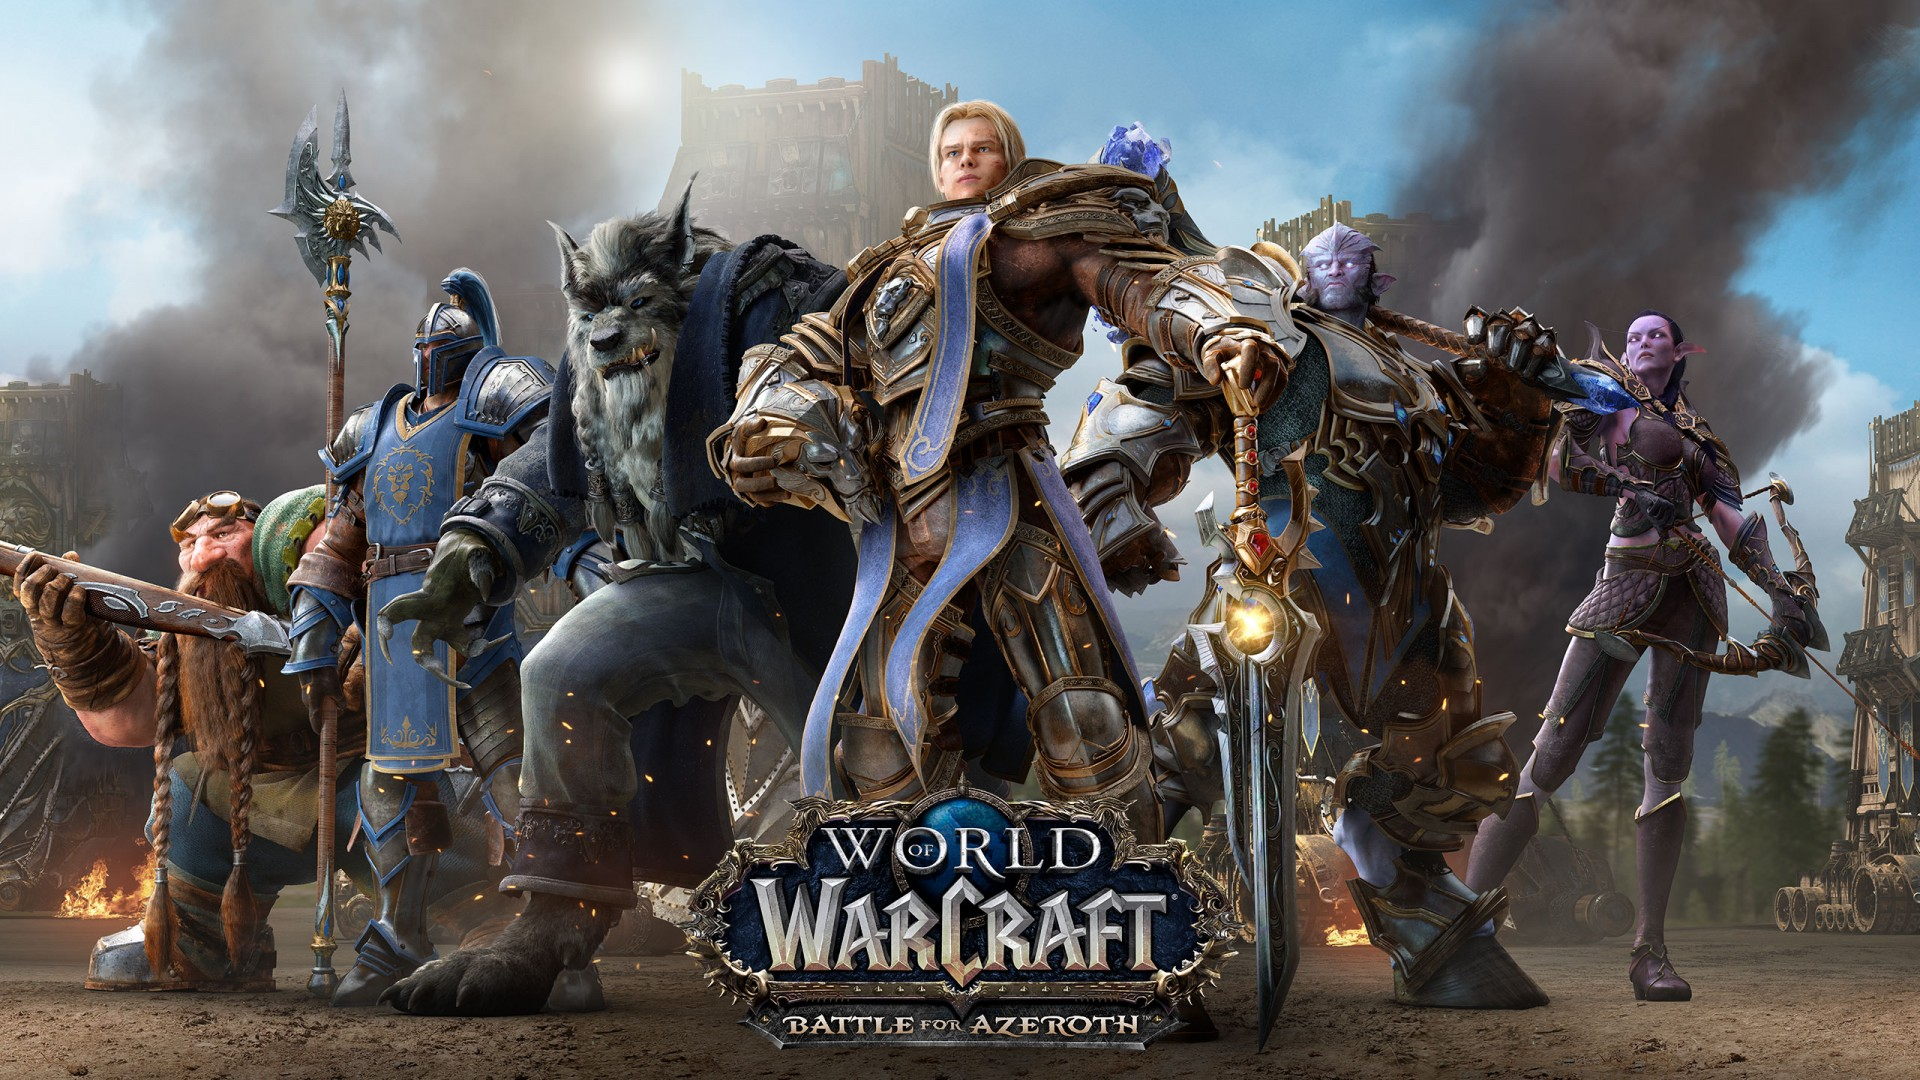 1080 Wallpaper Warcraft 2560 Desktop World X